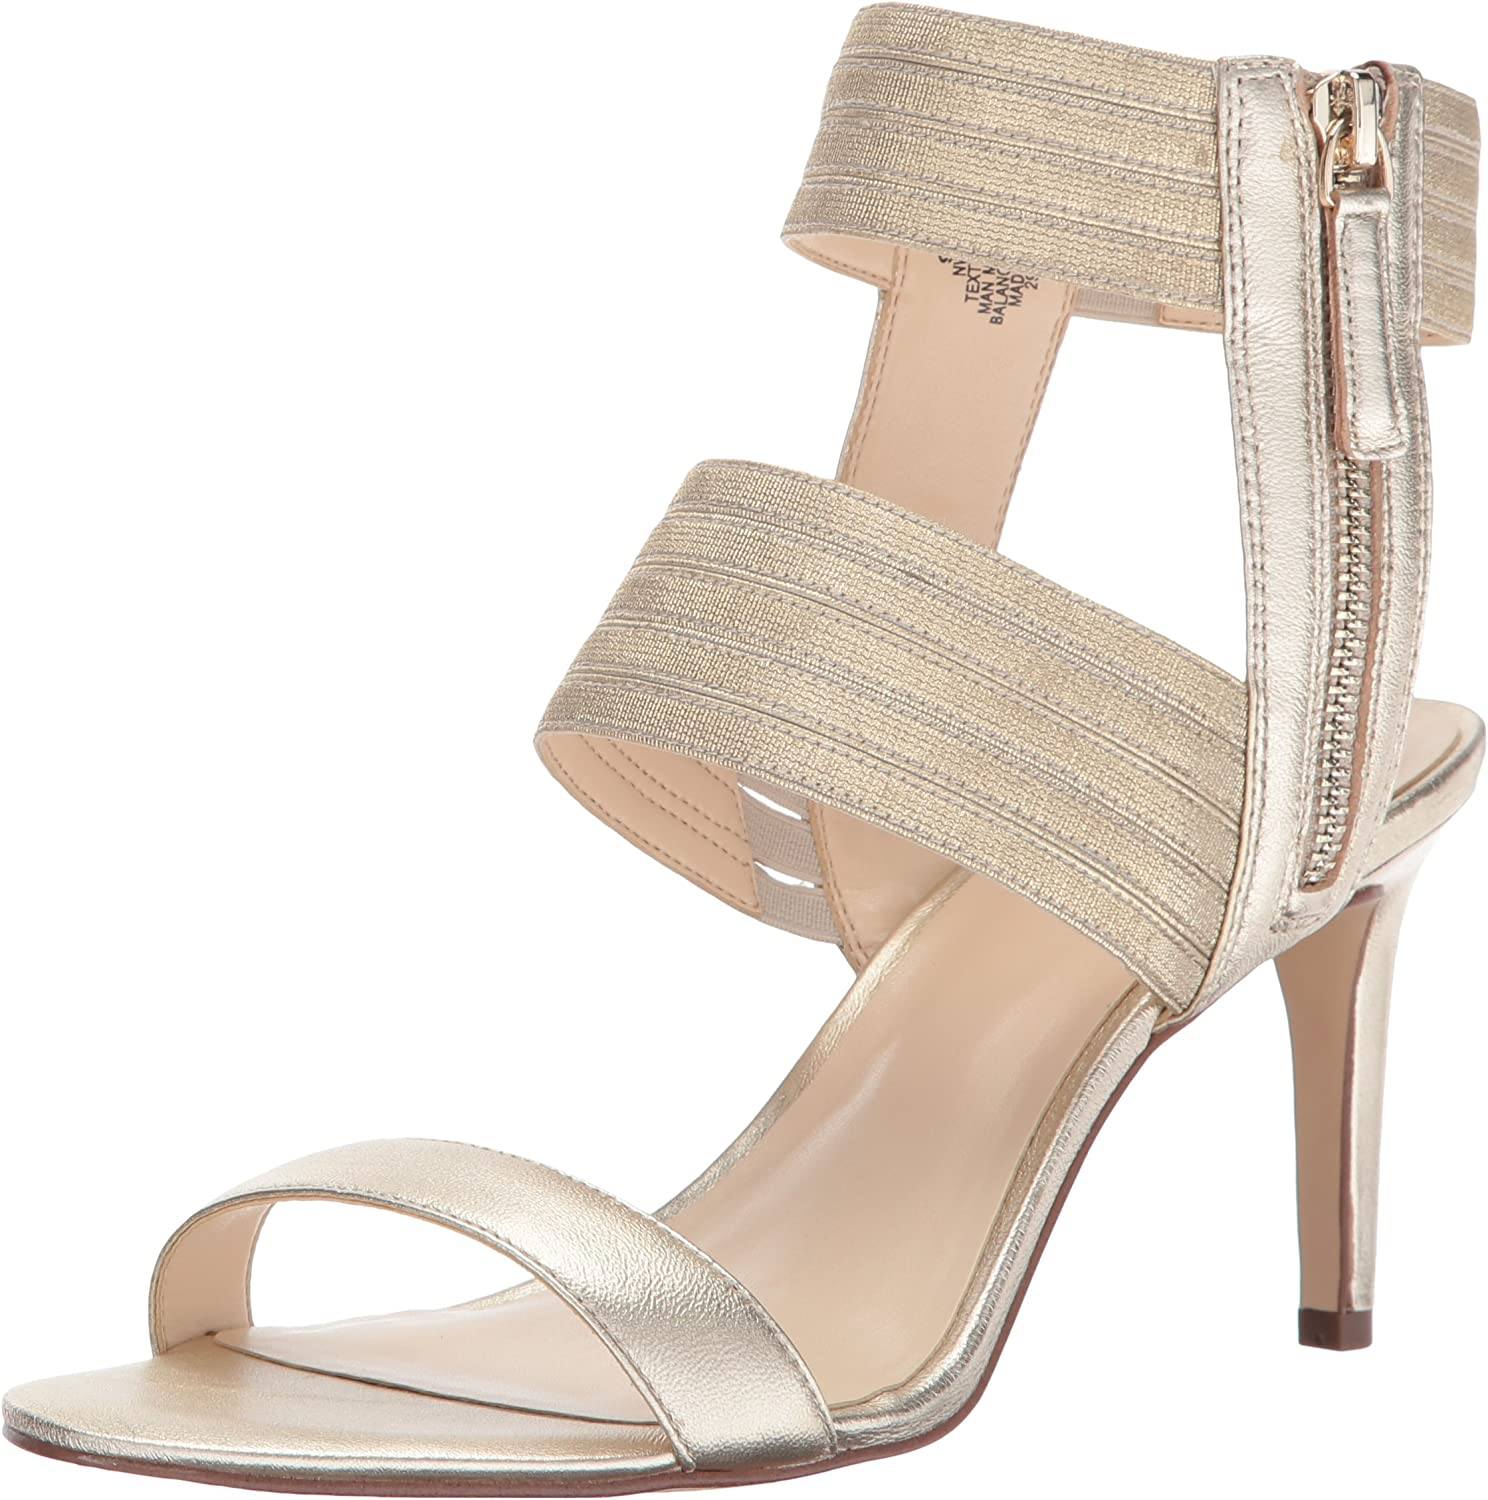 Nine West25027132 - Ilyse, Stoff Damen